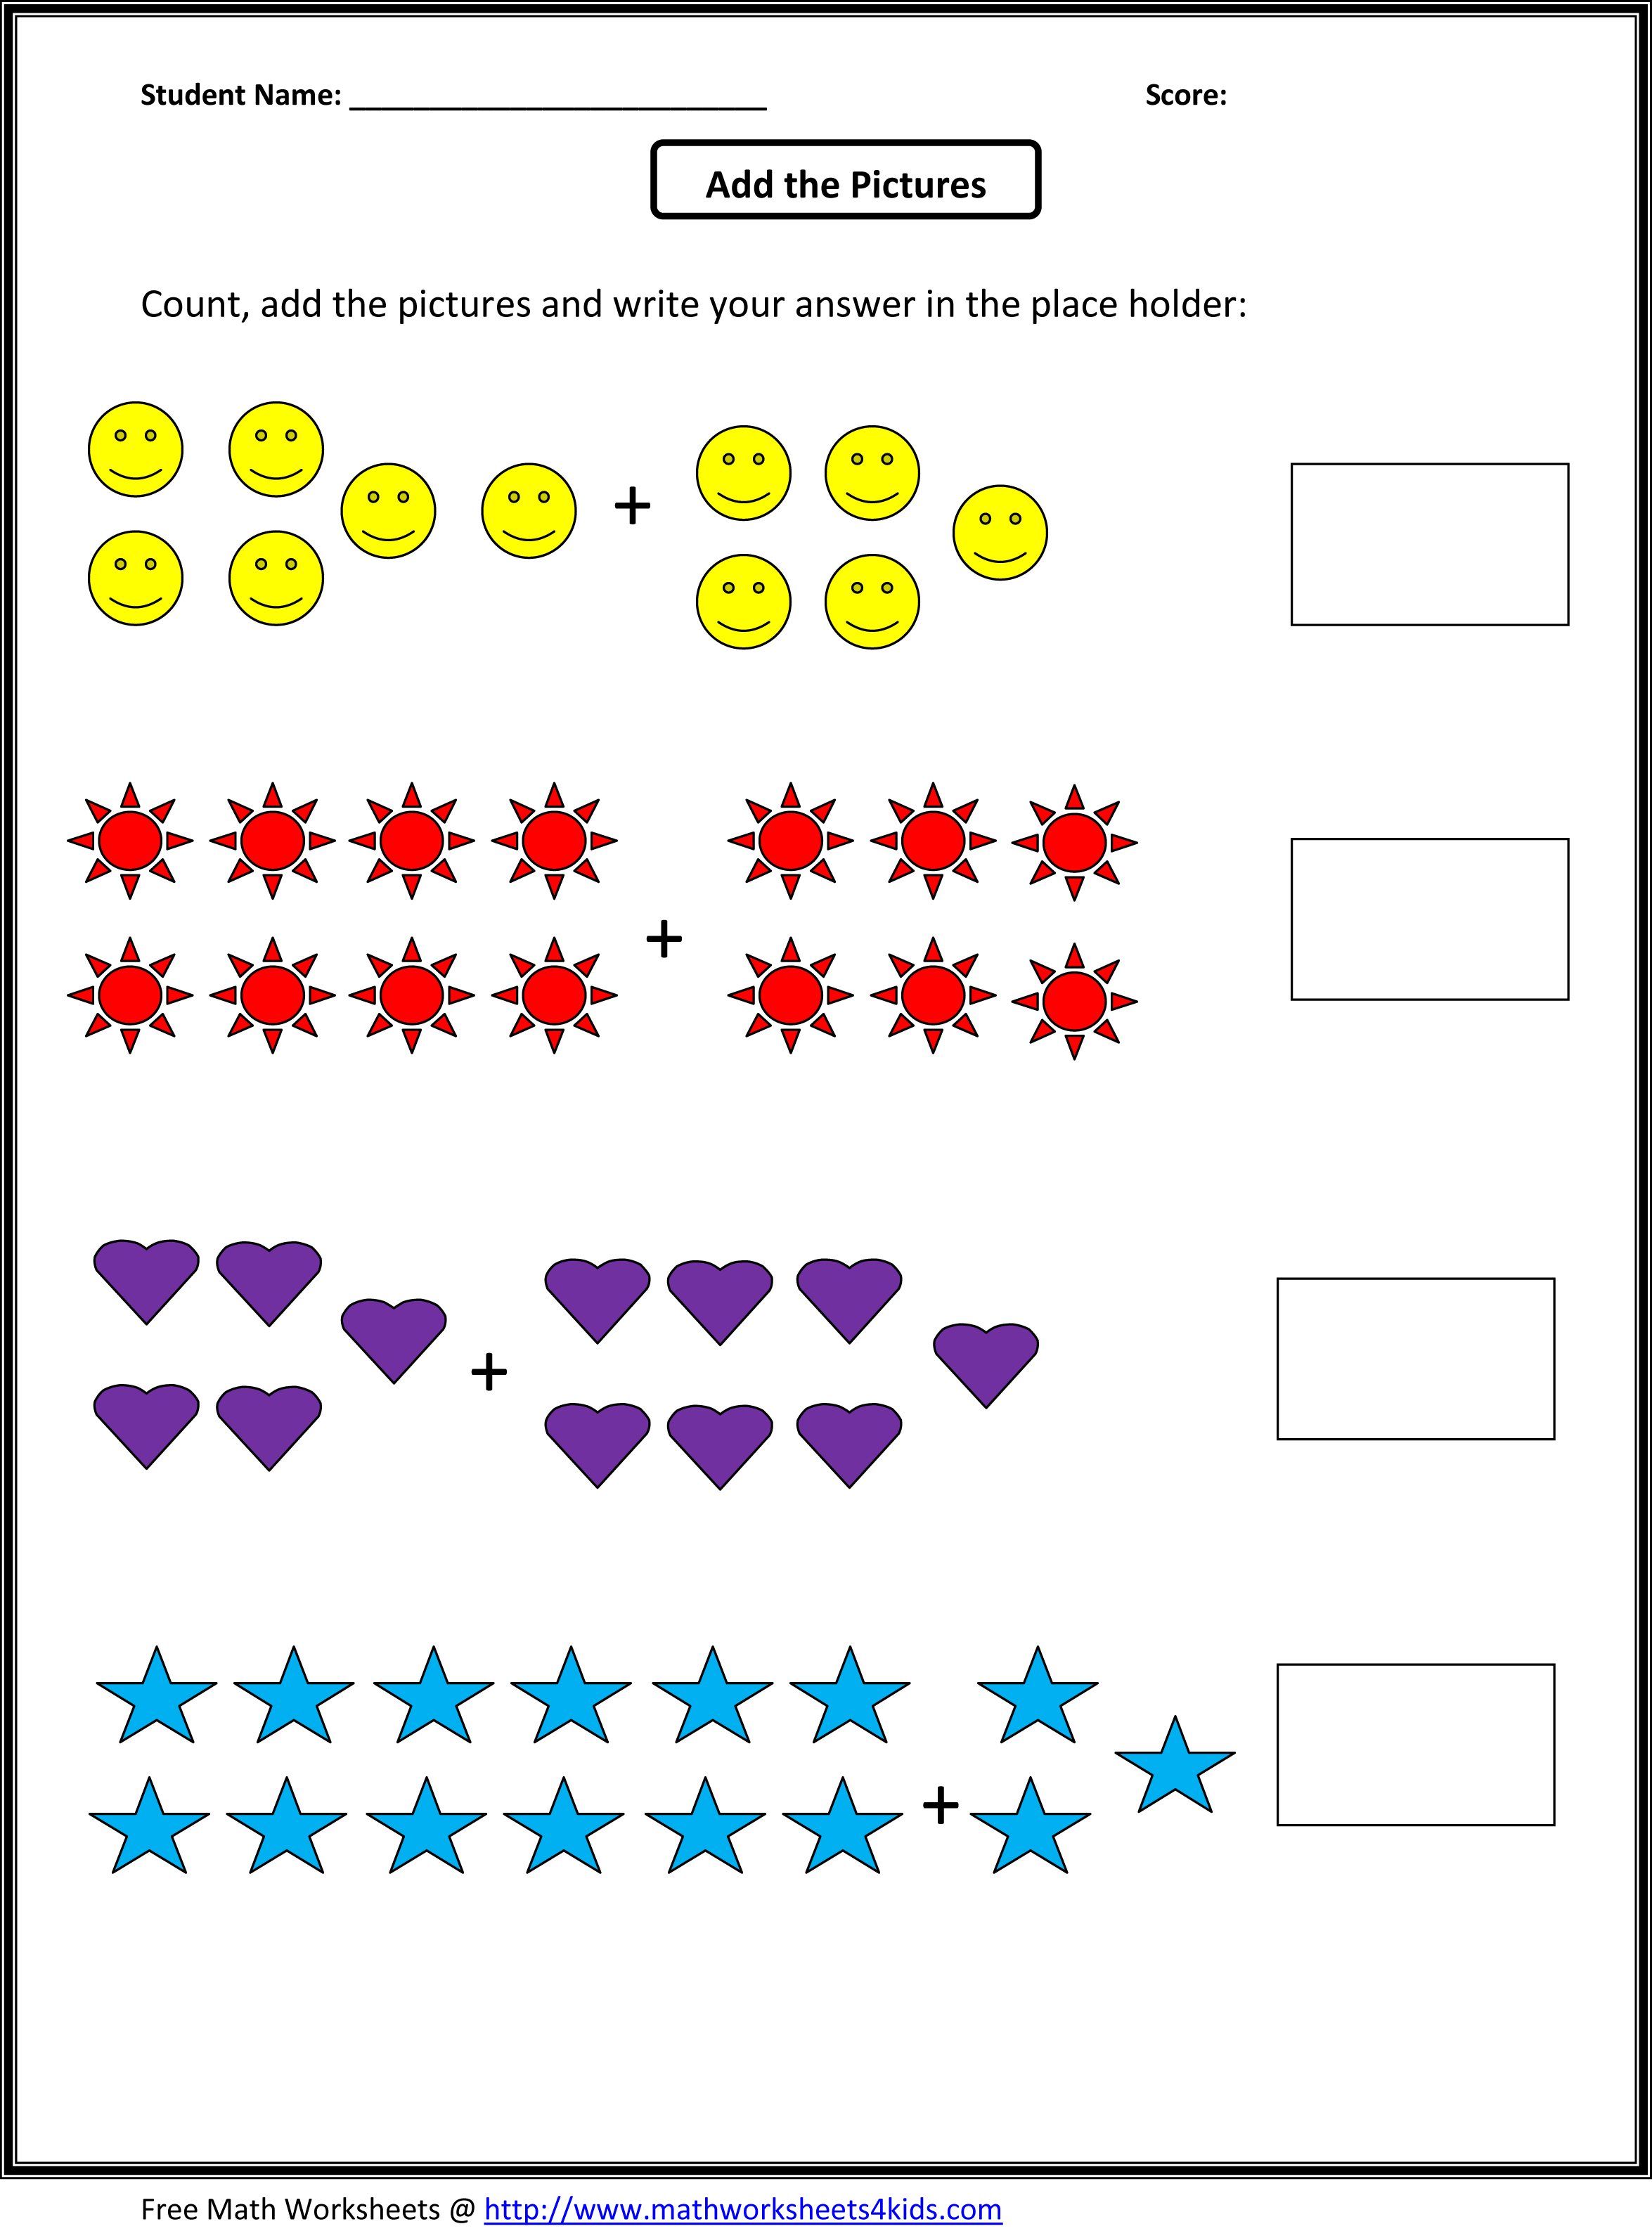 Proatmealus  Scenic Grade  Maths Worksheet  Reocurent With Fair Math Worksheets For St Grade Free  Reocurent With Divine Comma Worksheets With Answers Also Free Letter Formation Worksheets In Addition Fraction Decimal Worksheets And Activity Worksheets For Preschool As Well As Martin Luther King Day Worksheets Free Additionally Worksheet For Kg Class In English From Reocurentcom With Proatmealus  Fair Grade  Maths Worksheet  Reocurent With Divine Math Worksheets For St Grade Free  Reocurent And Scenic Comma Worksheets With Answers Also Free Letter Formation Worksheets In Addition Fraction Decimal Worksheets From Reocurentcom